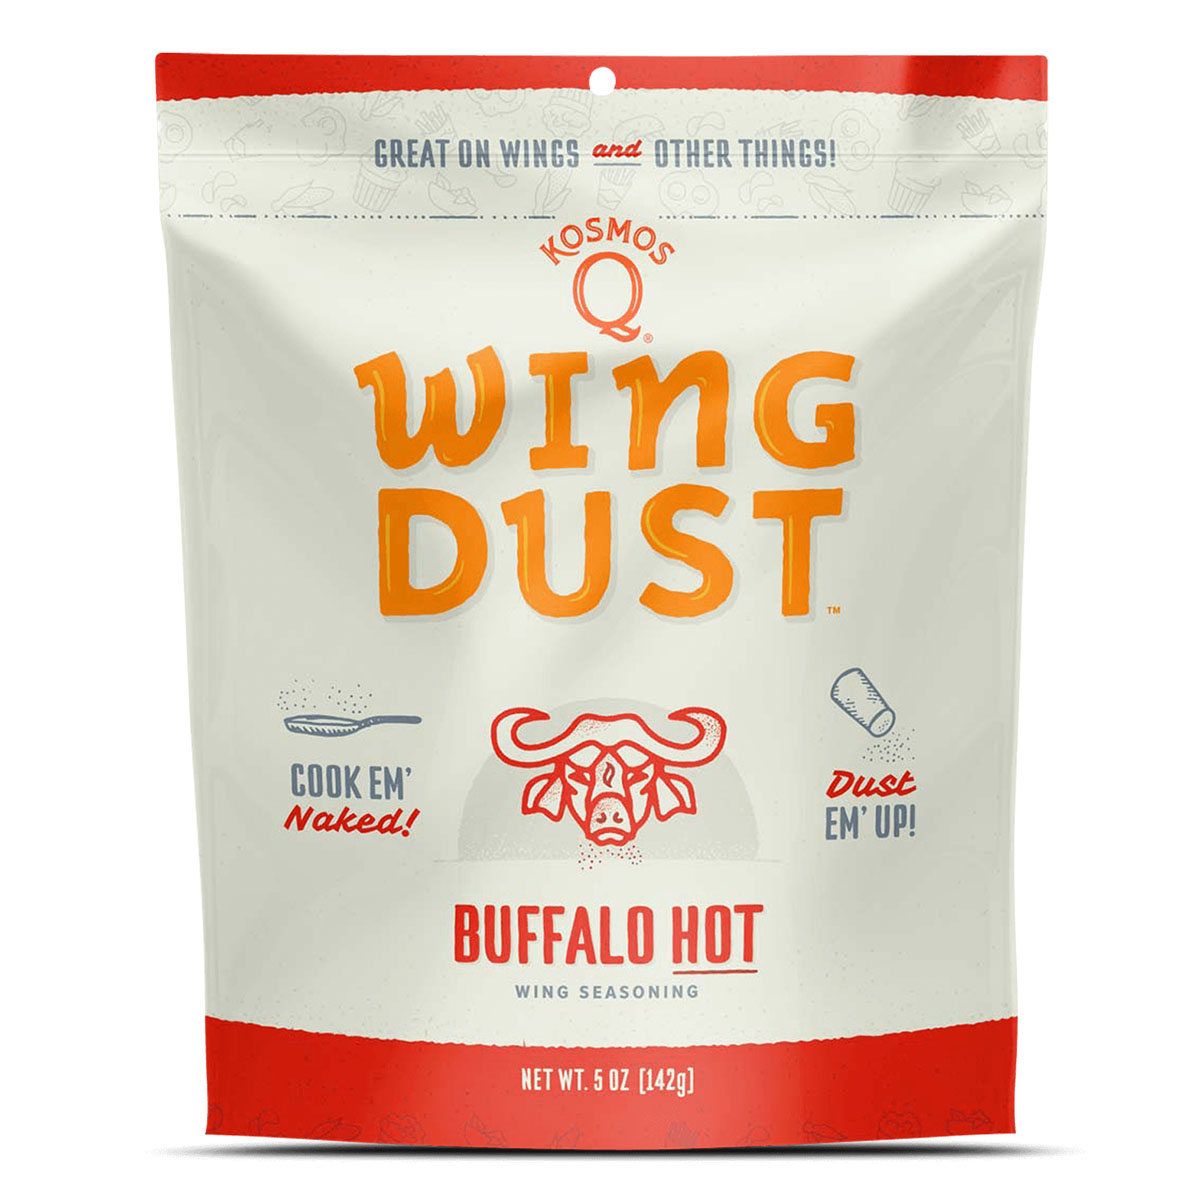 Buffalo_Hot_Wing_Dust_front_view_Kosmos_Q